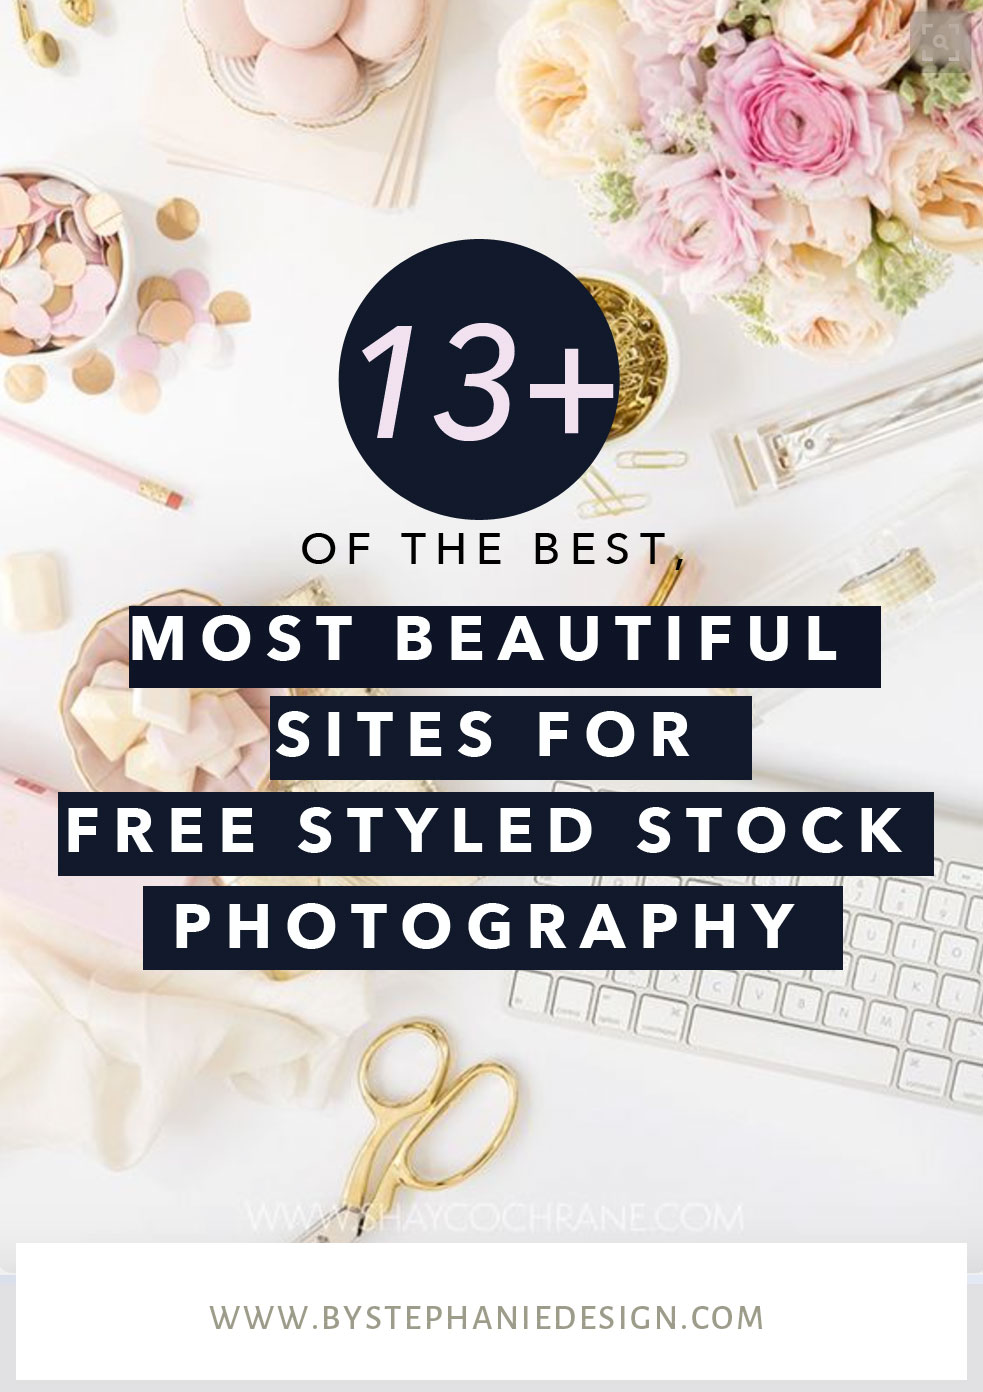 free feminine styled stock photography - by stephanie design